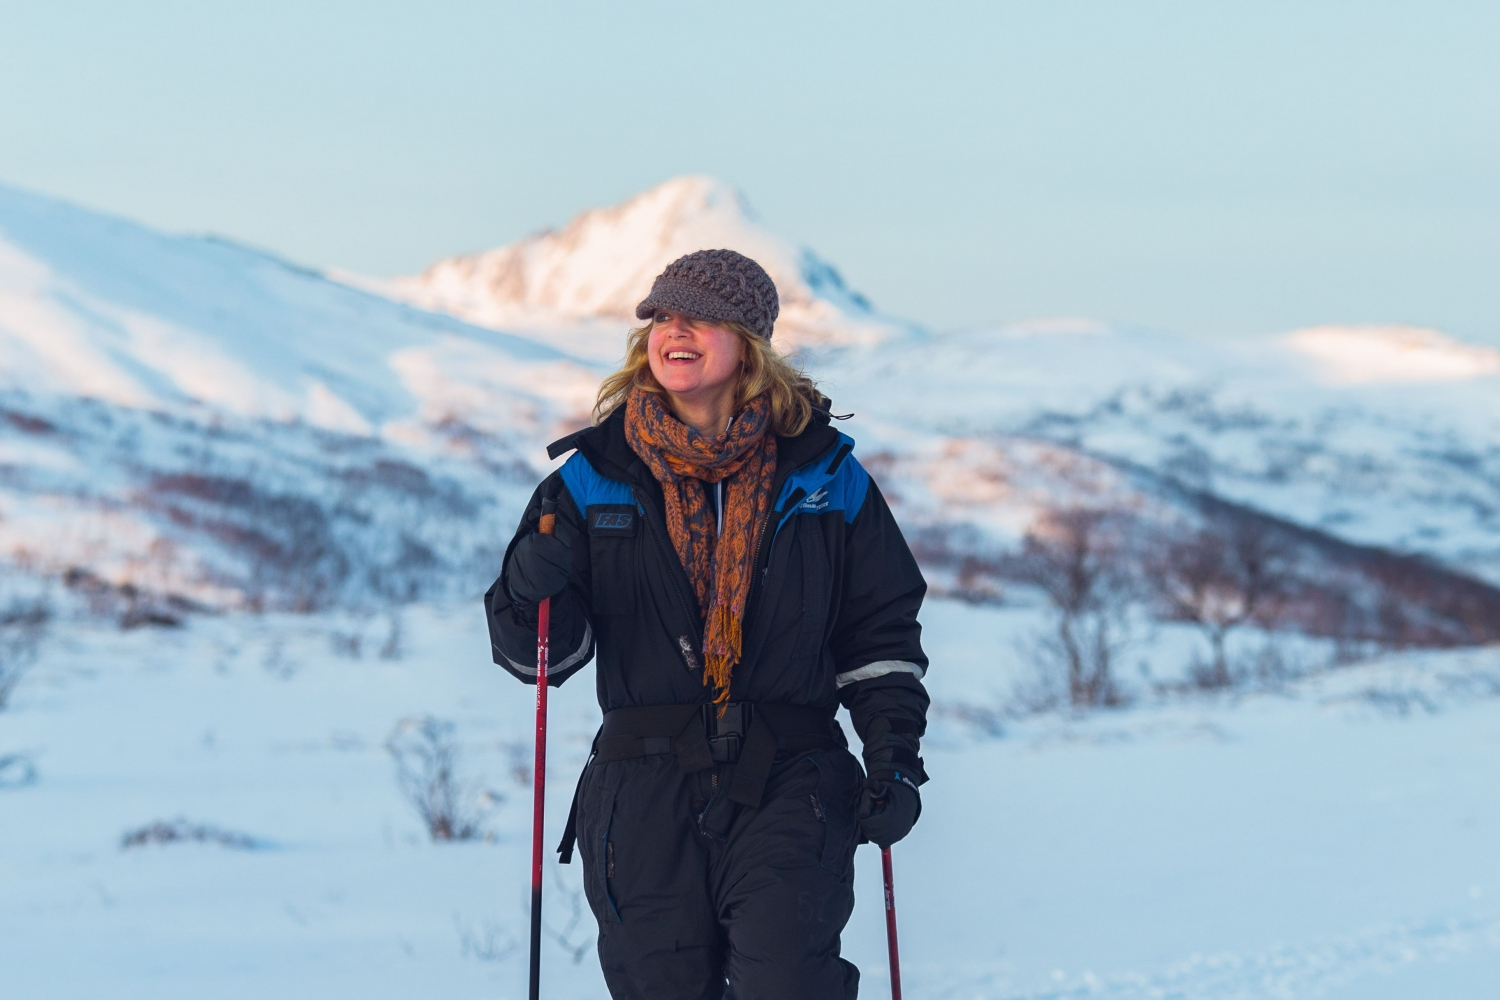 A woman snowshowing in a snowy Arctic landscape